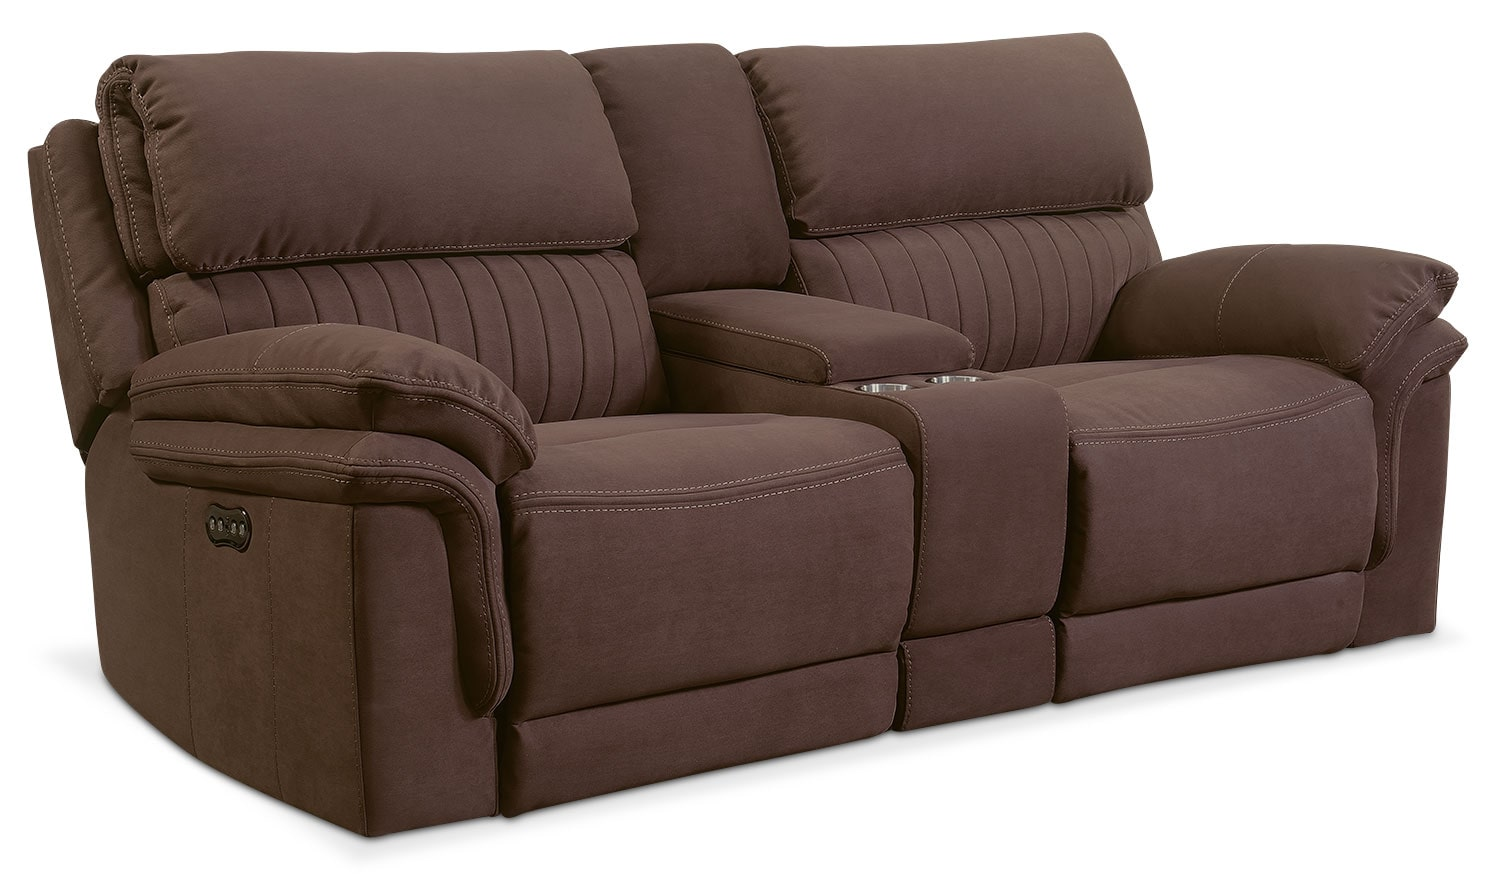 Living Room Furniture - Monterey 3-Piece Power Reclining Sofa with Console - Mocha